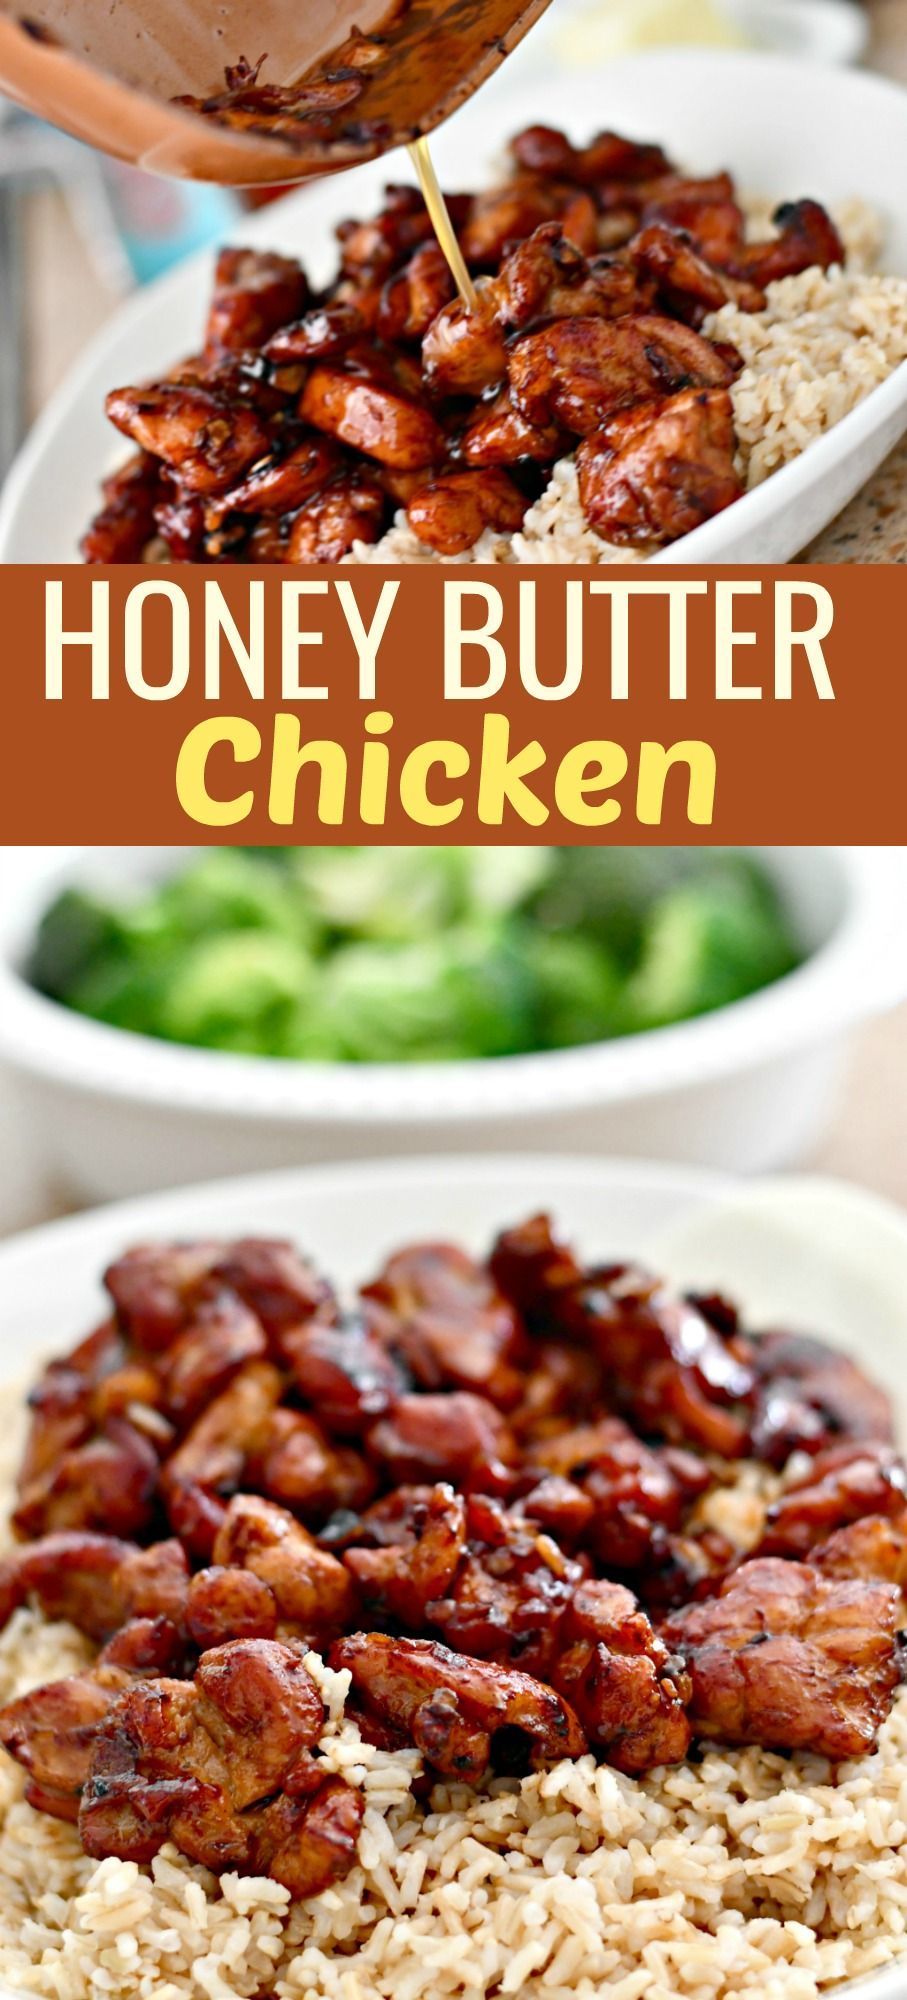 Honey Butter Chicken (Easy Skillet Meal) images